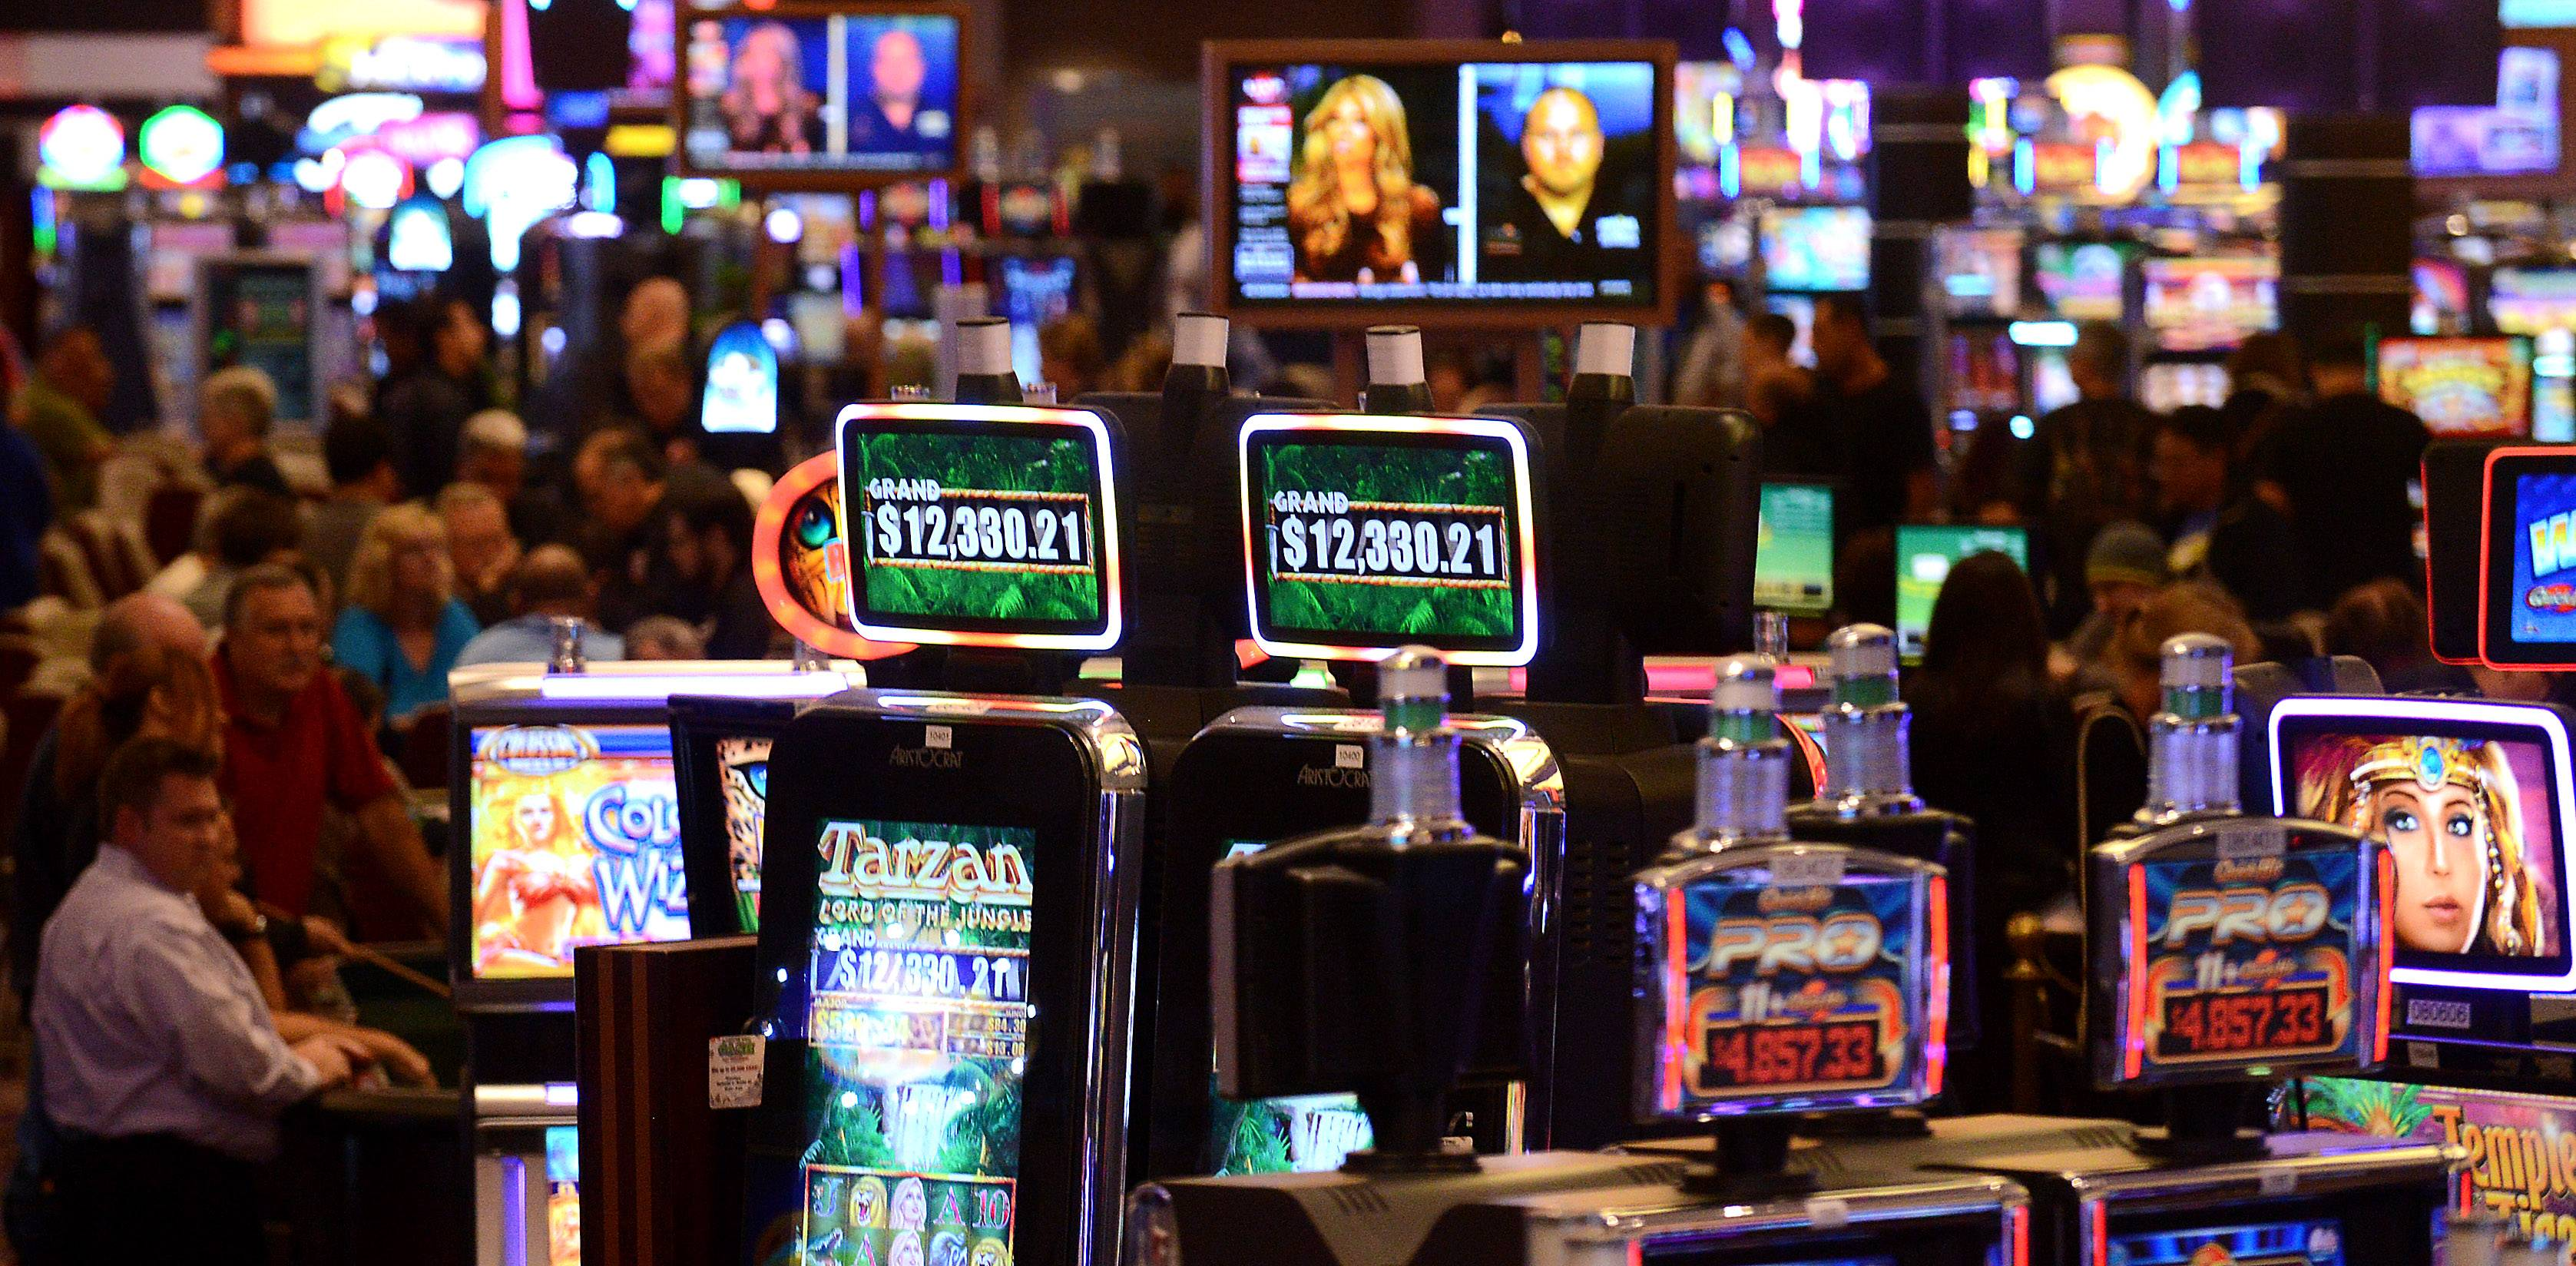 Elgin's Grand Victoria Casino provides many groups with needed funds each year, but the grants distributed by Kane County have decreased the last several years. In 2015 the county doled out $5.3 million for programs. Next year, that will decrease to $4.78 million.